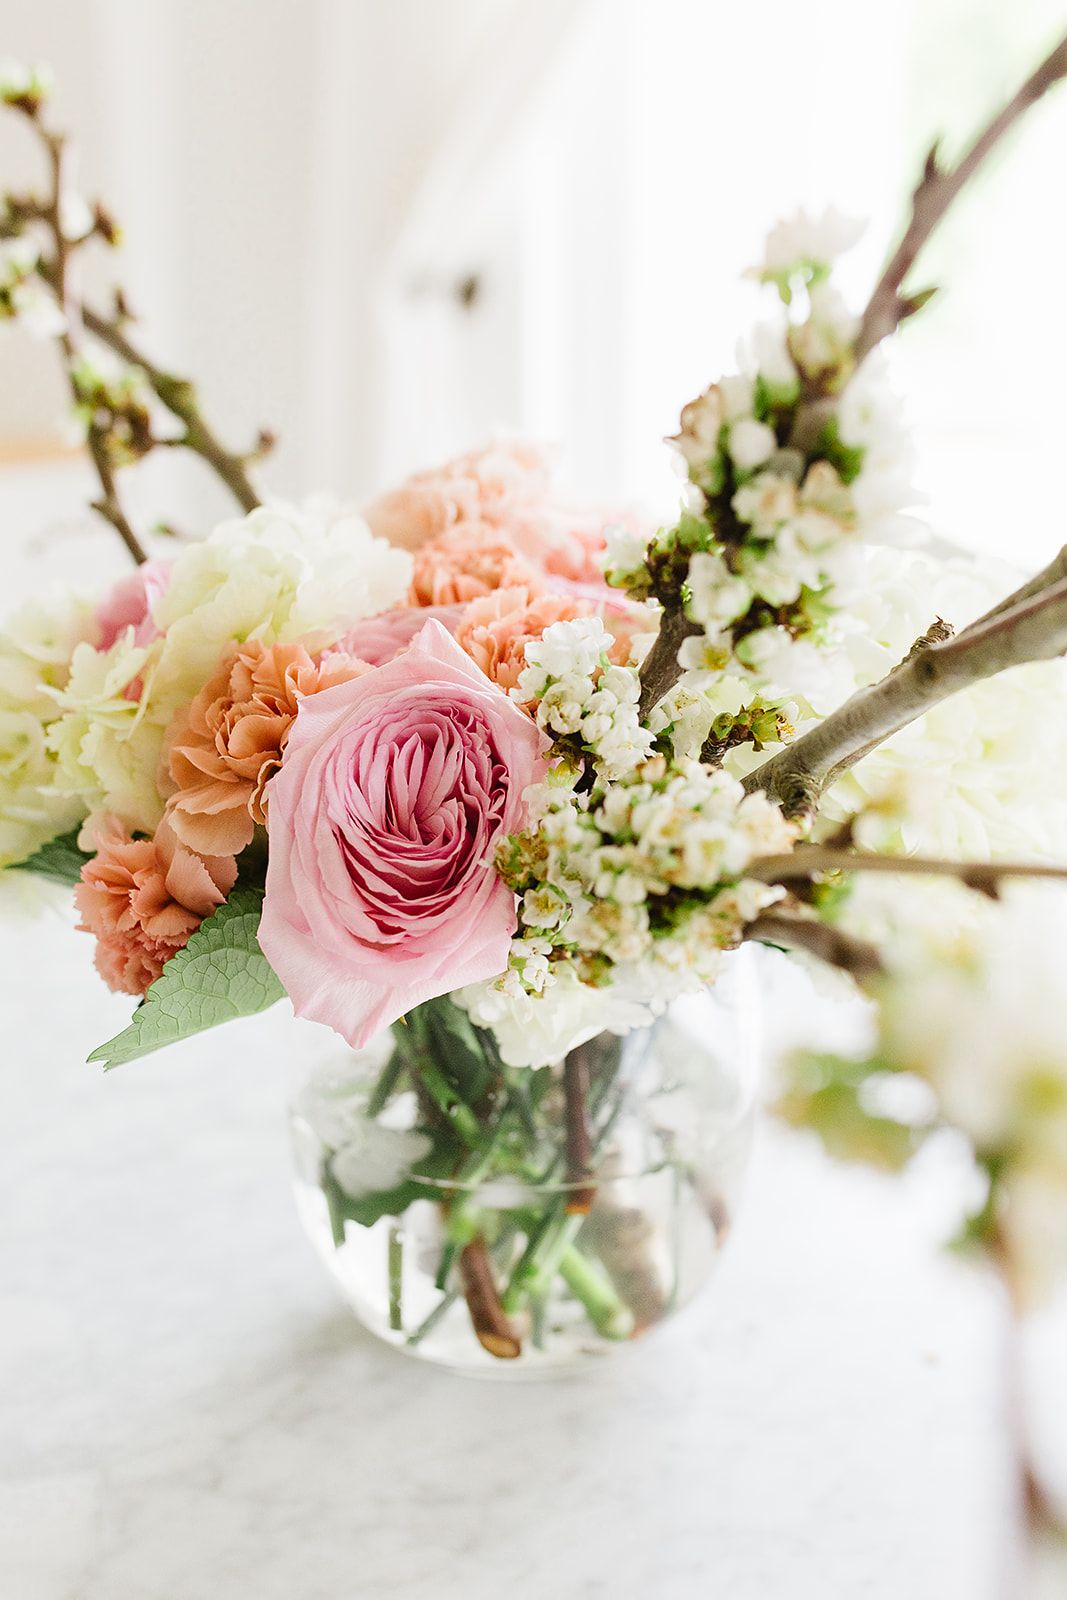 How to make your floral arrangements last longer at home